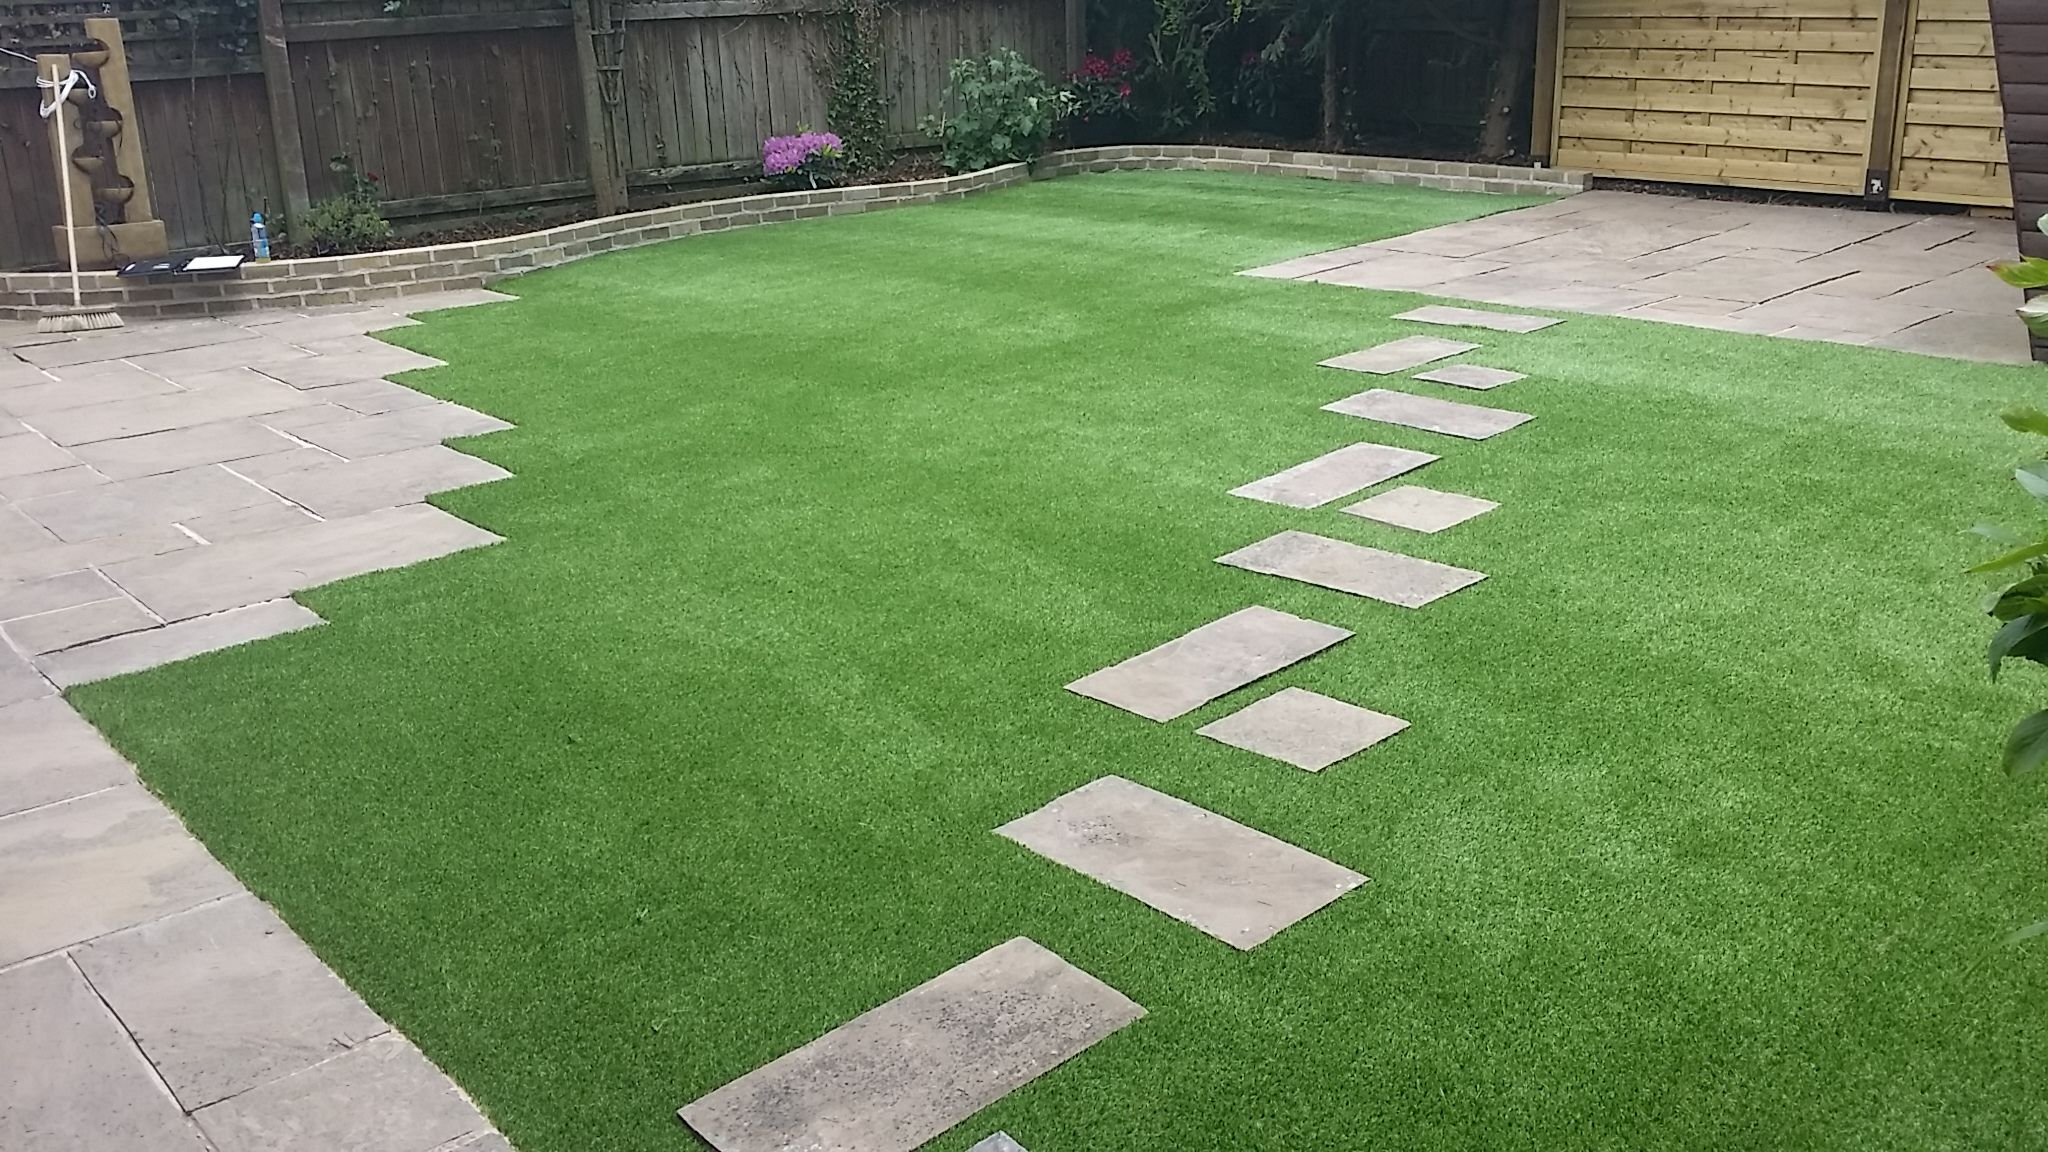 Fake Grass Can Be Can Be An Instant Pick Me Up For Small Space Gardens At  Your Home And Courtyards. This Will Prevent The Need For Noisy Mowing And  ...